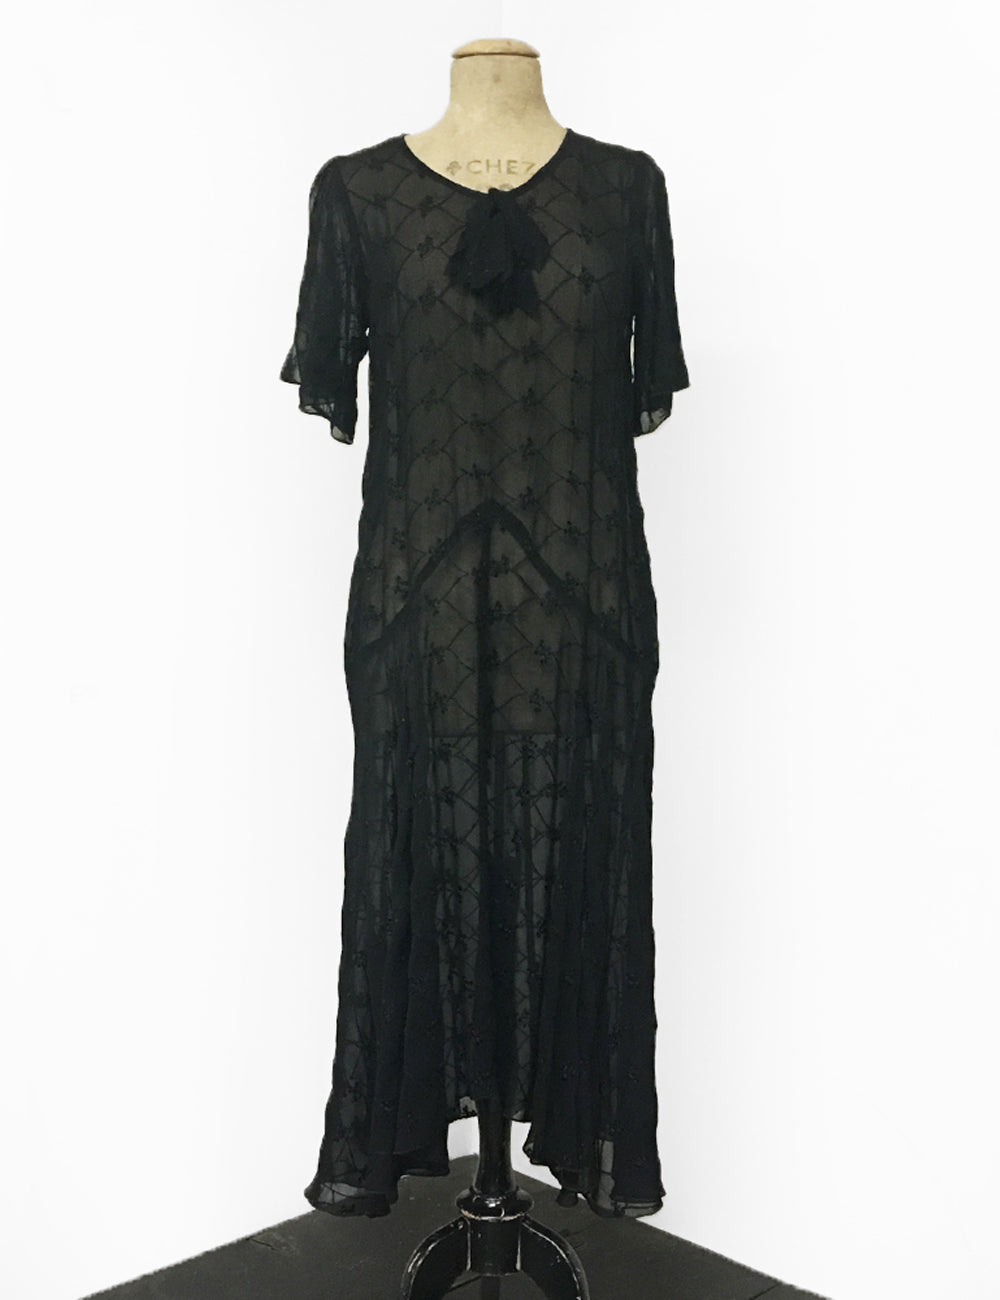 Black Sheer Embroidered 1920s Style Charleston Flapper Dress